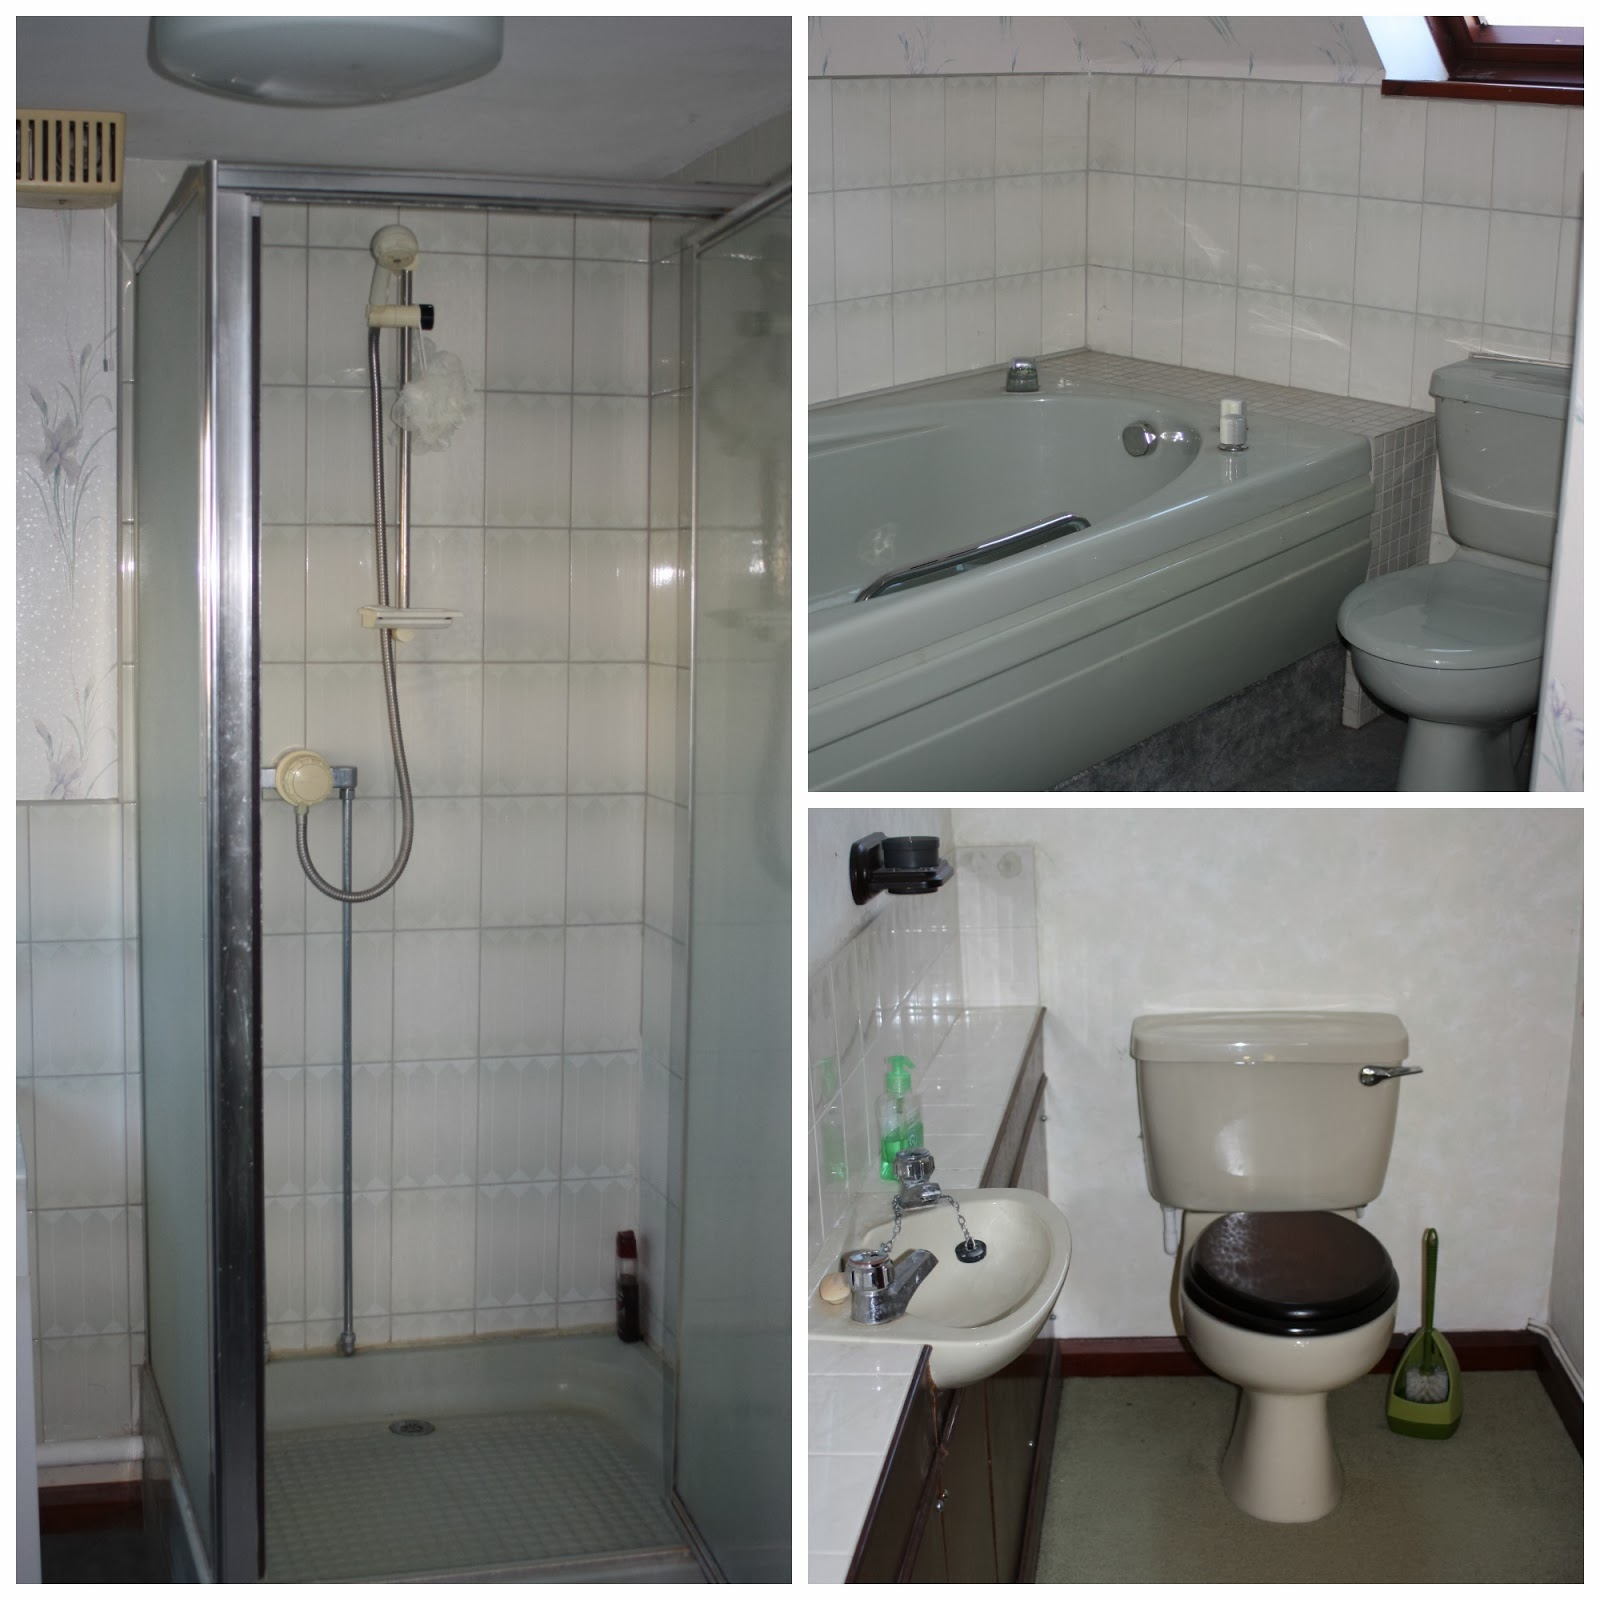 Bathroom-shower-toilet-bath